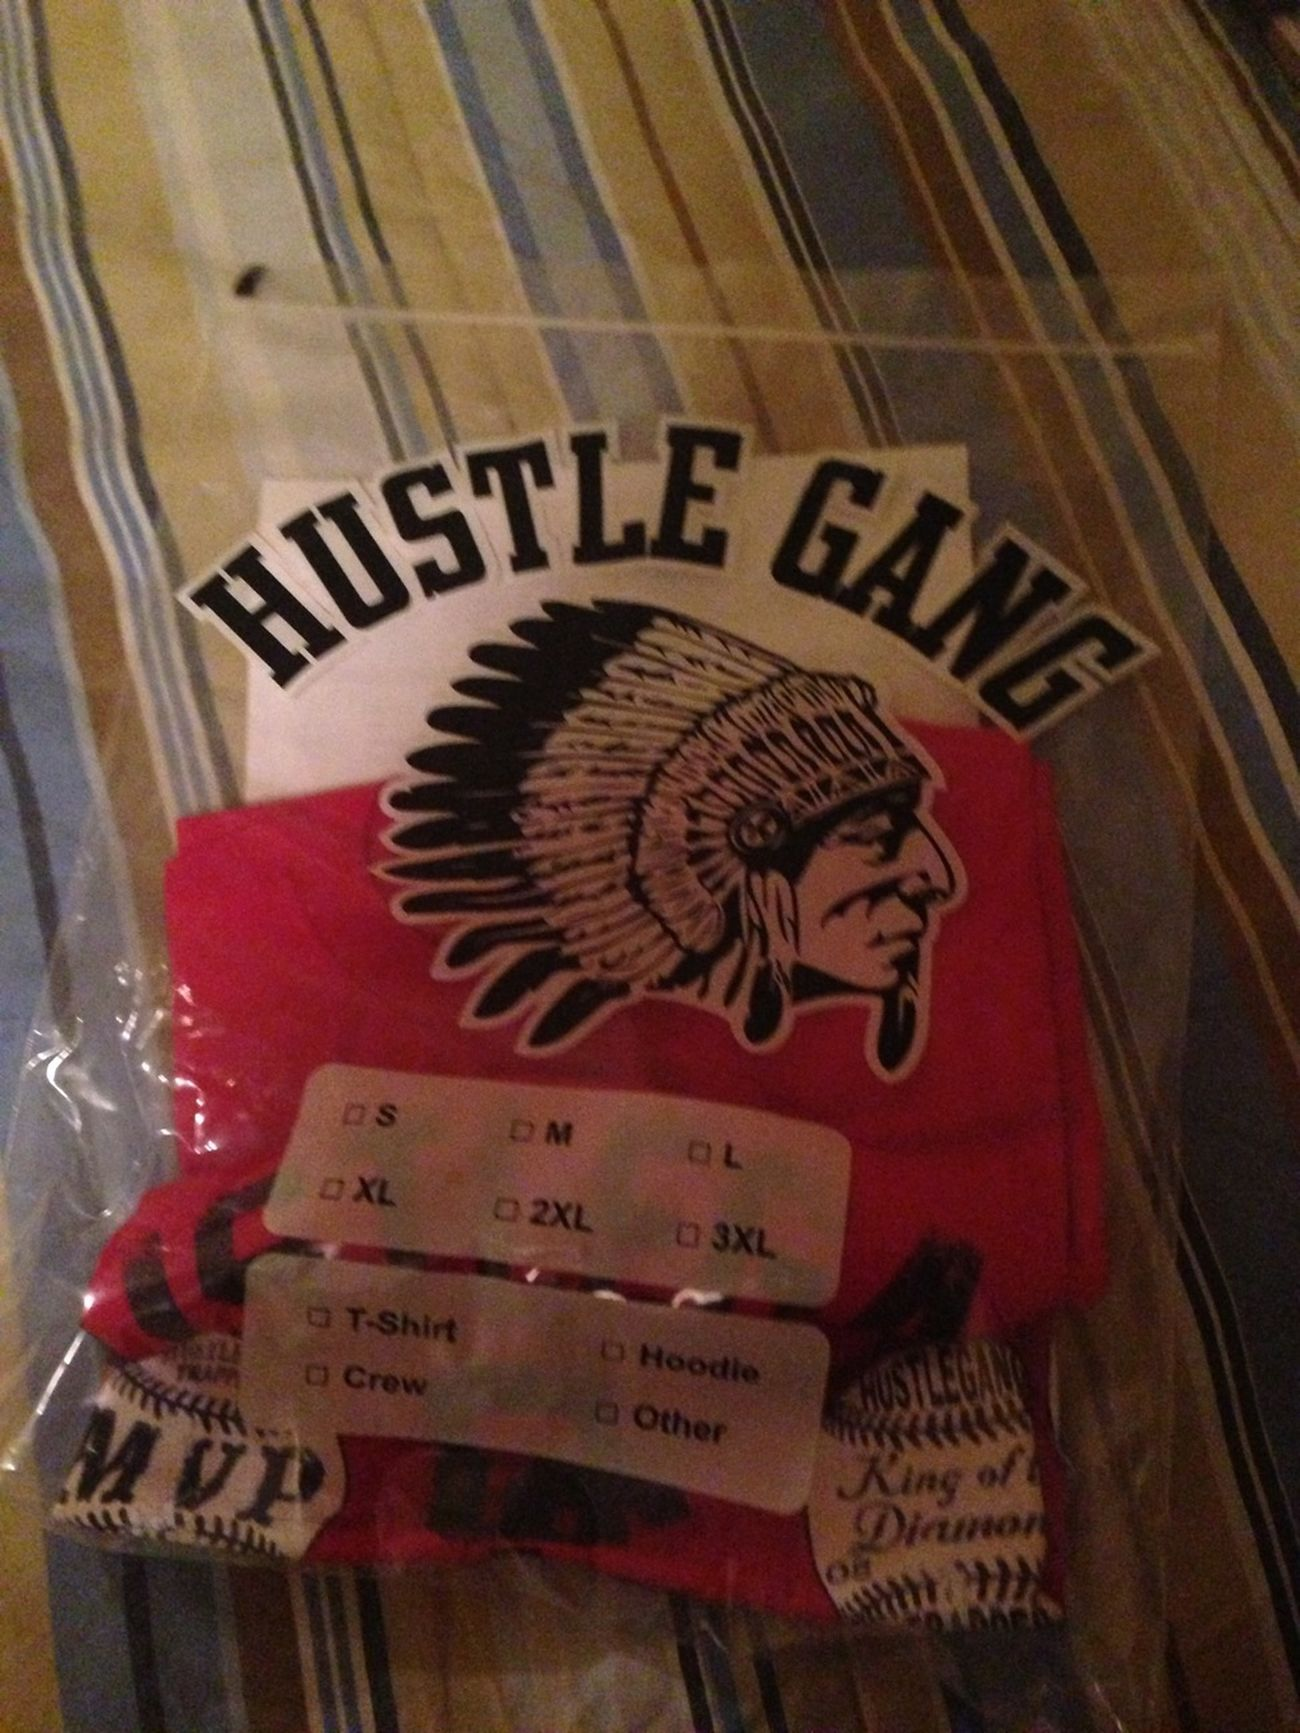 What came in the mail yesterday #HUSTLEGANG #GDOD